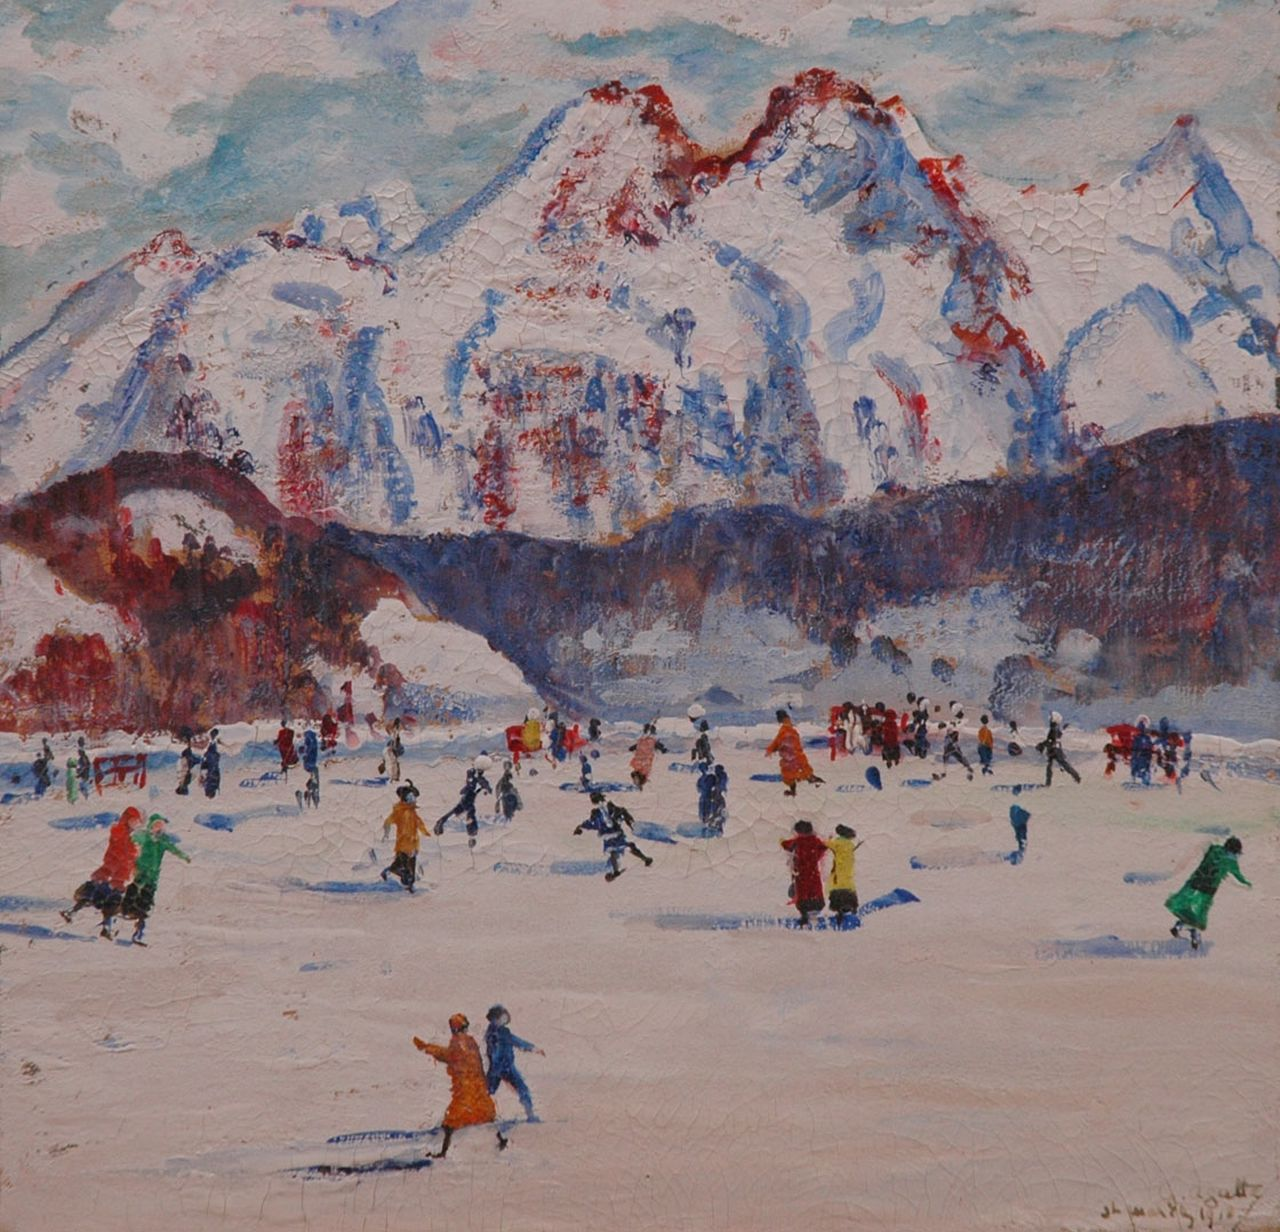 Georgette Agutte | Skating at St. Moritz, gouache on board, 23.5 x 24.3 cm, signed l.r. and dated 'St. Moritz 1918'